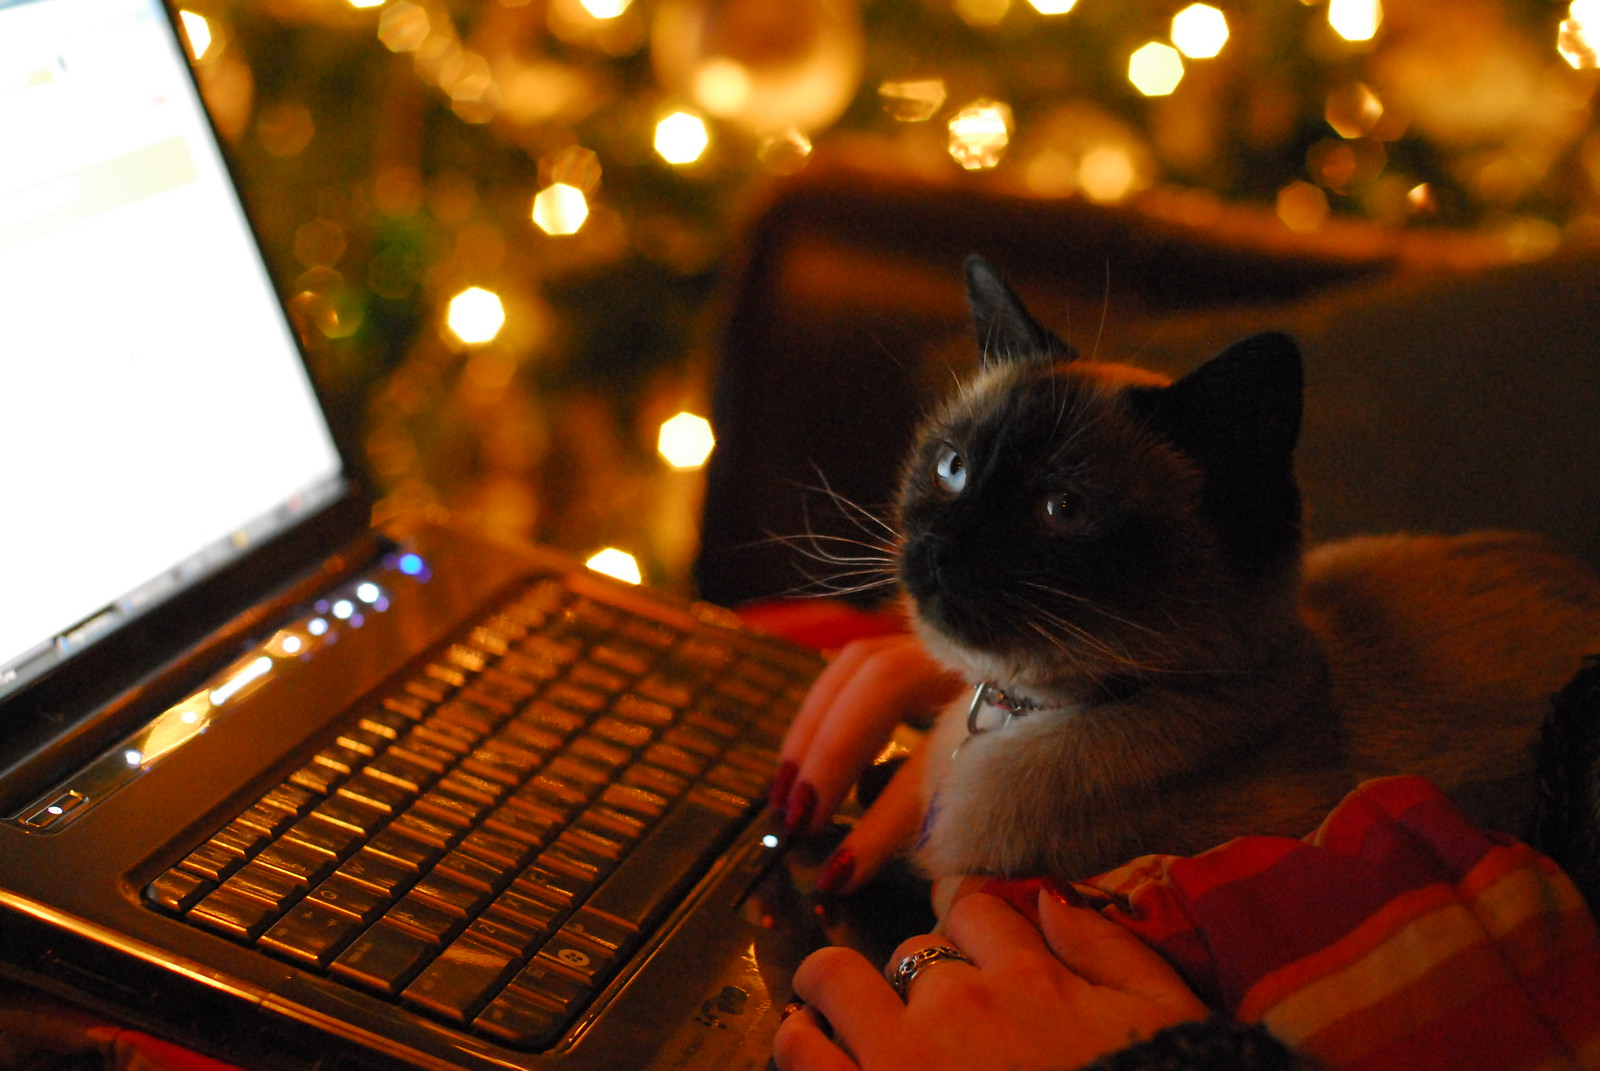 A Siamese cat sitting in front of an open laptop computer.